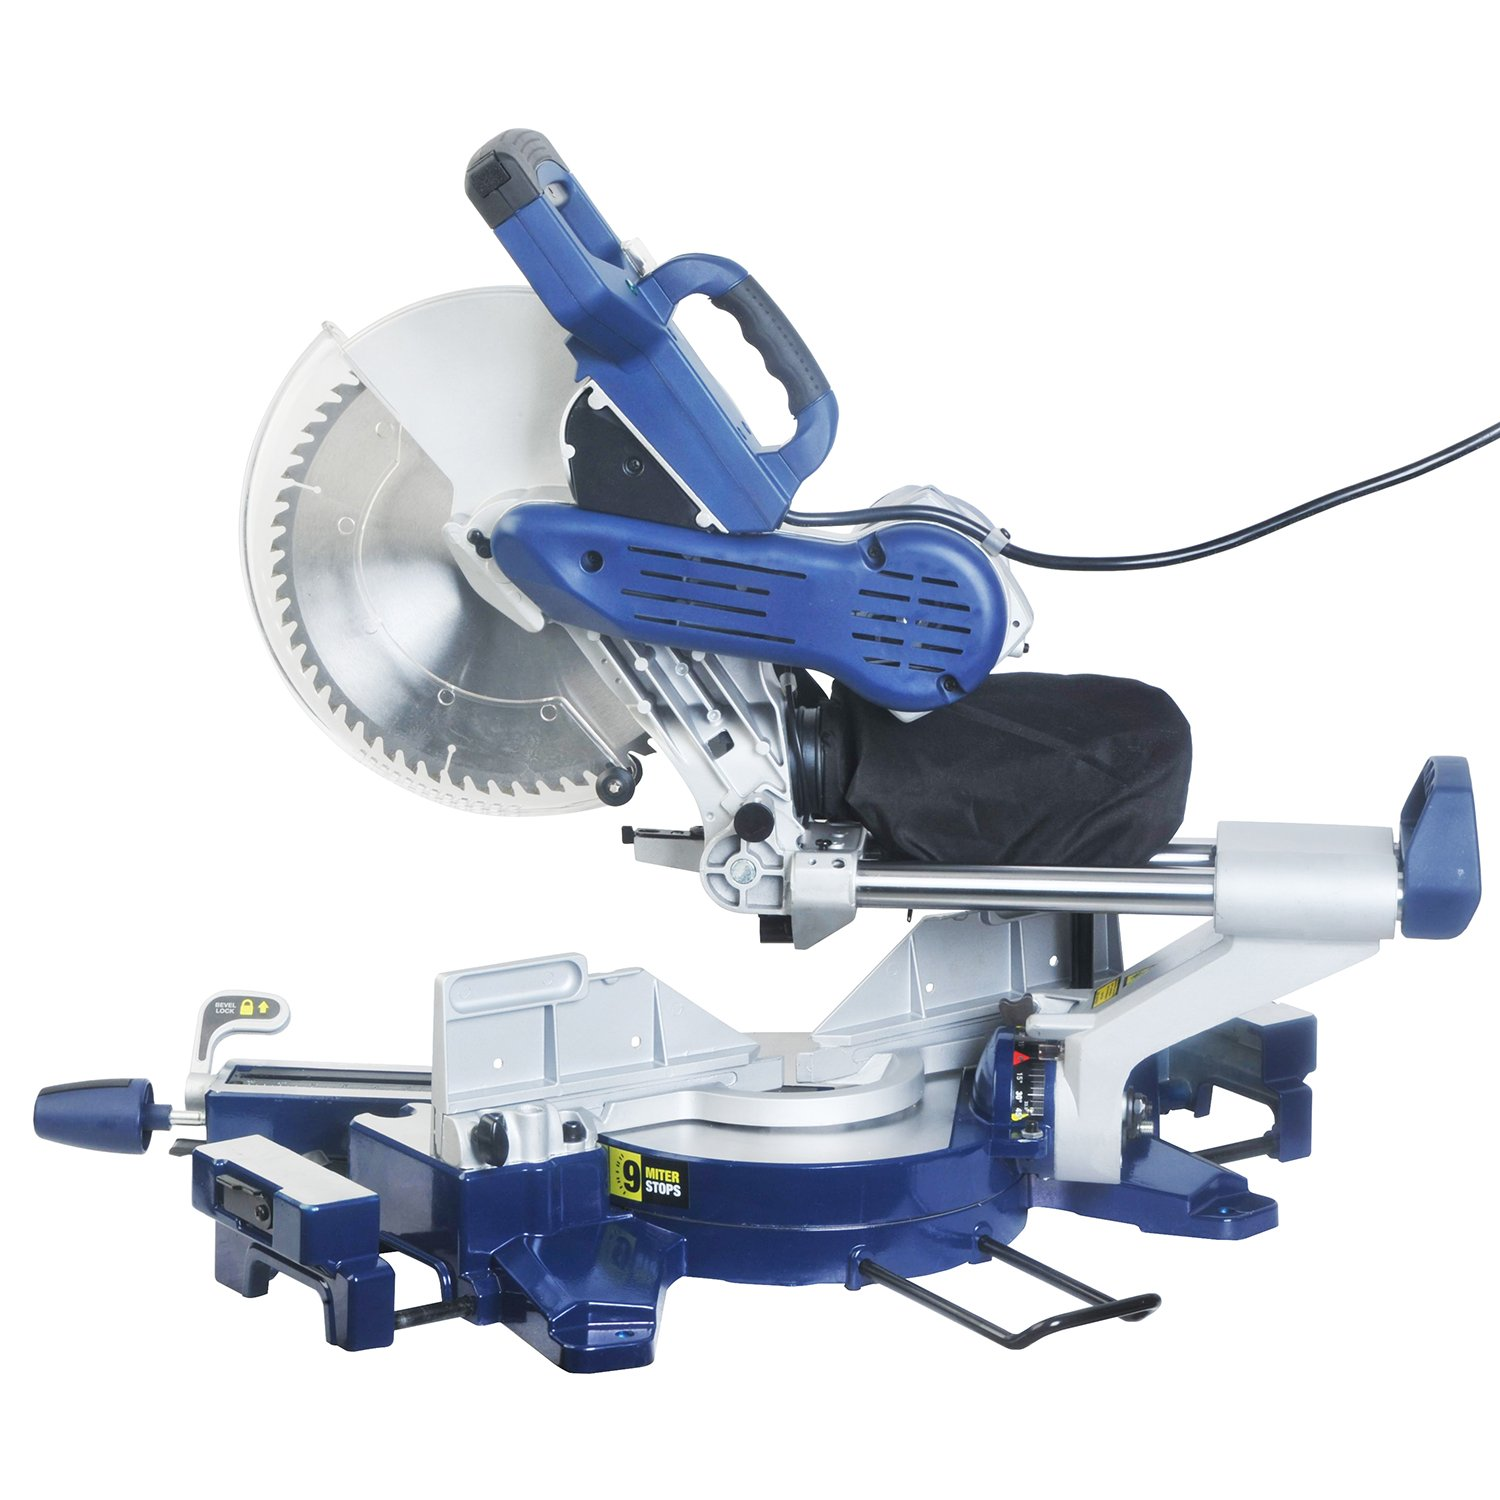 Wonlink 15 Amp 12'' Dual Bevel Sliding Compound Miter Saw with Laser and LED Work Light by Wonlink (Image #7)